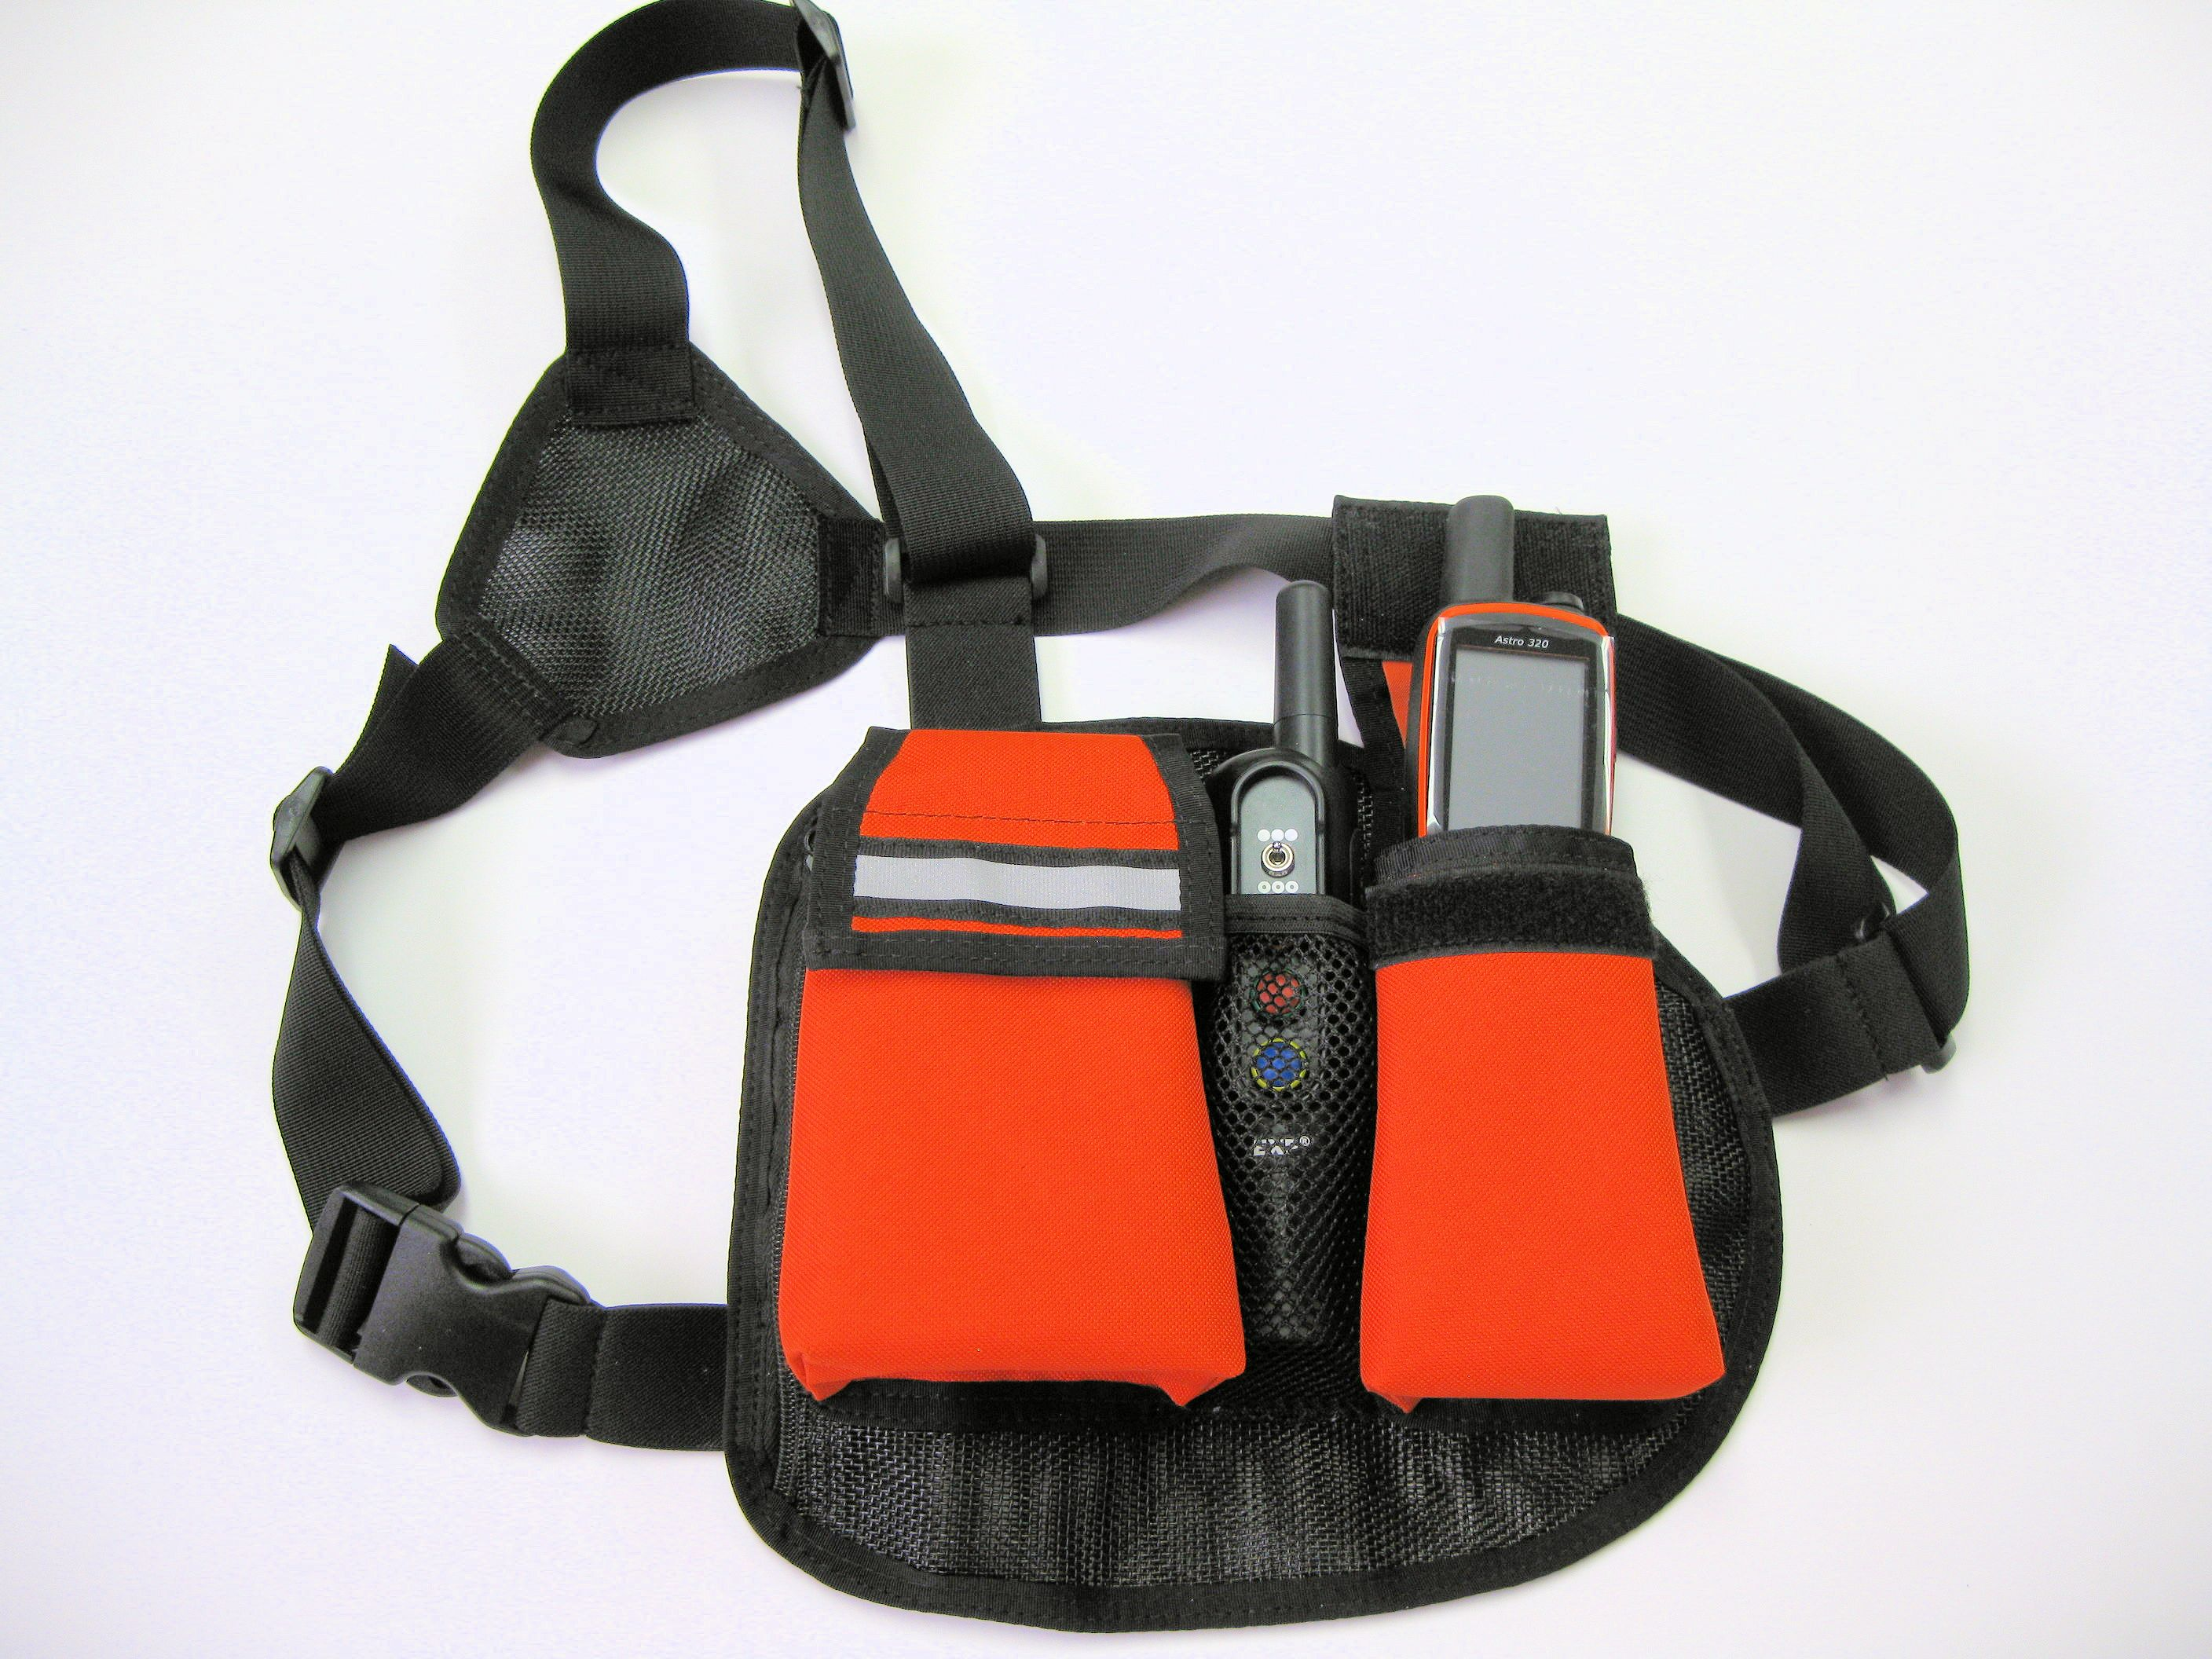 ChestPack accessories grain valley dog supply, distributor catalog  at reclaimingppi.co